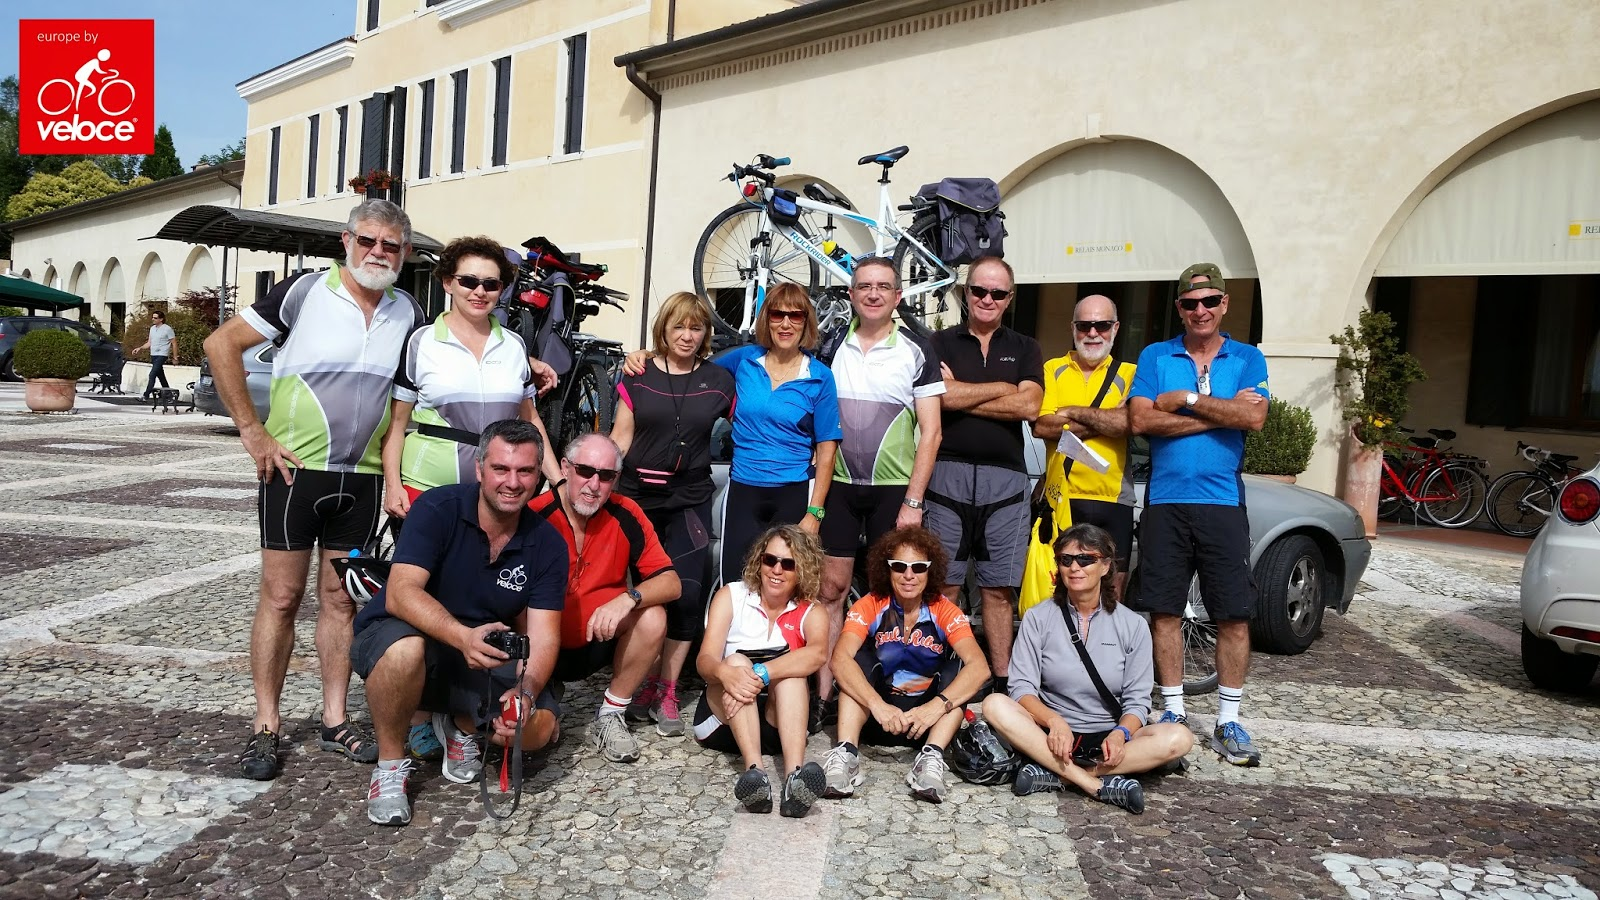 cycling prosecco wine roads italy